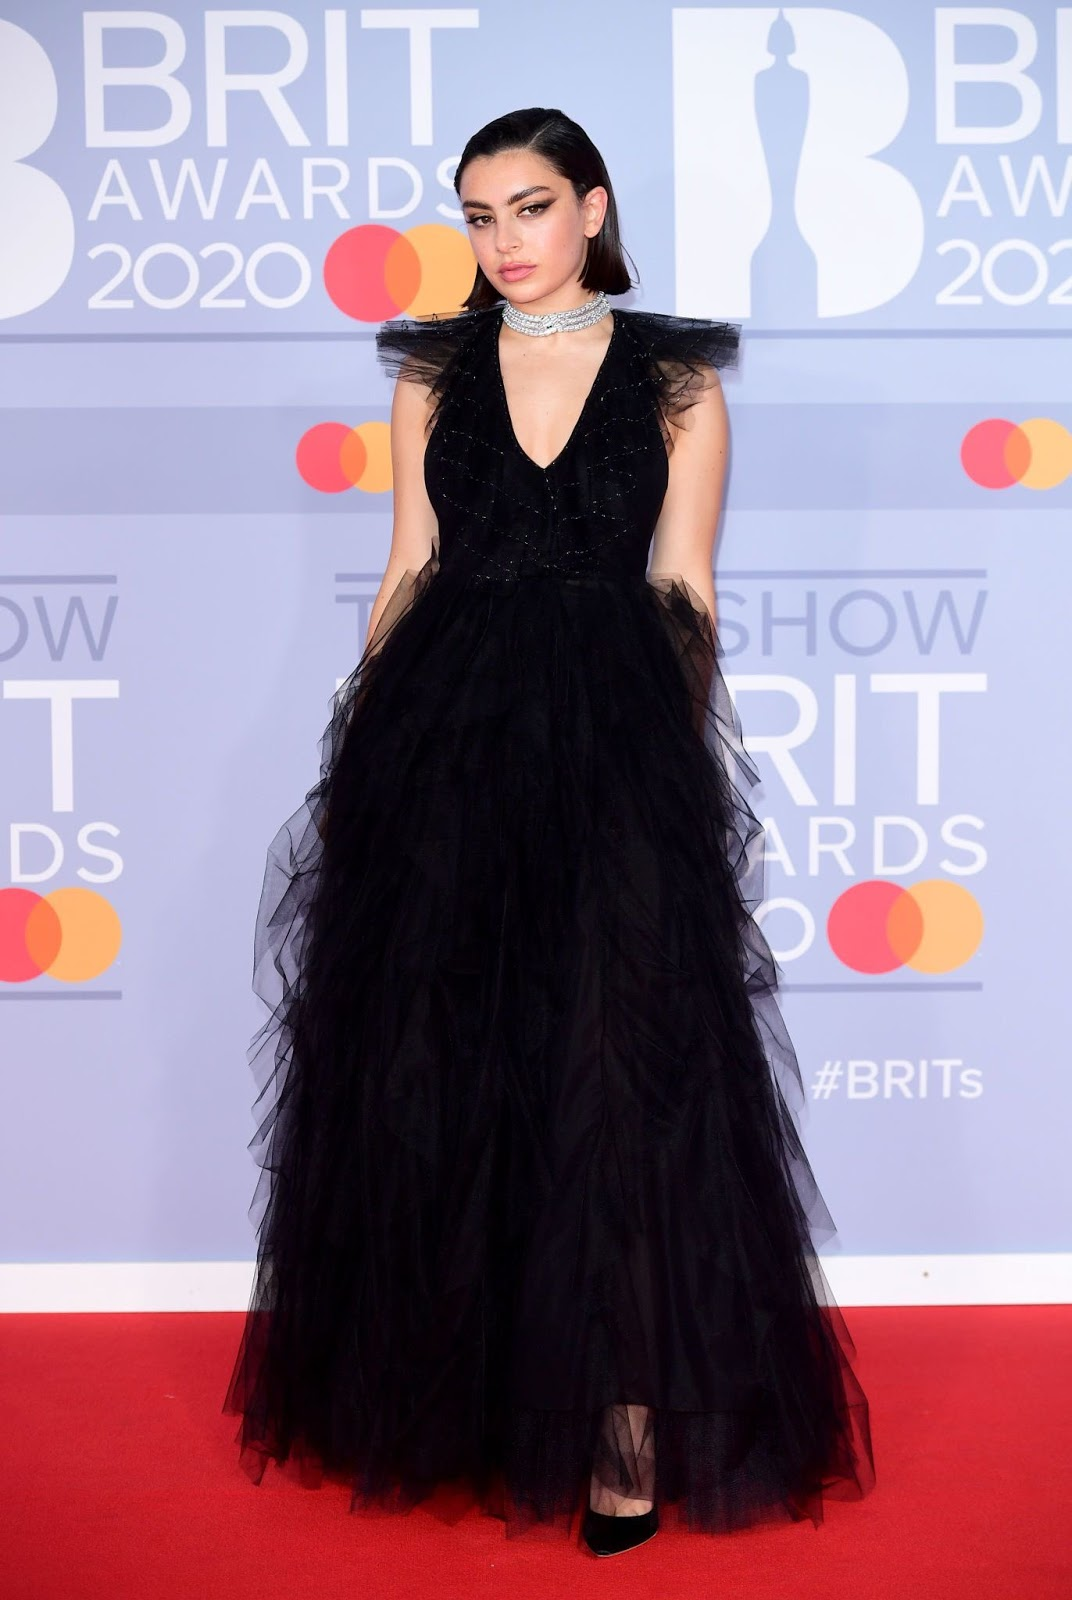 Charli XCX oozes Gothic chic in a black tulle gown as hits the red carpet following British Female Solo Artist nomination